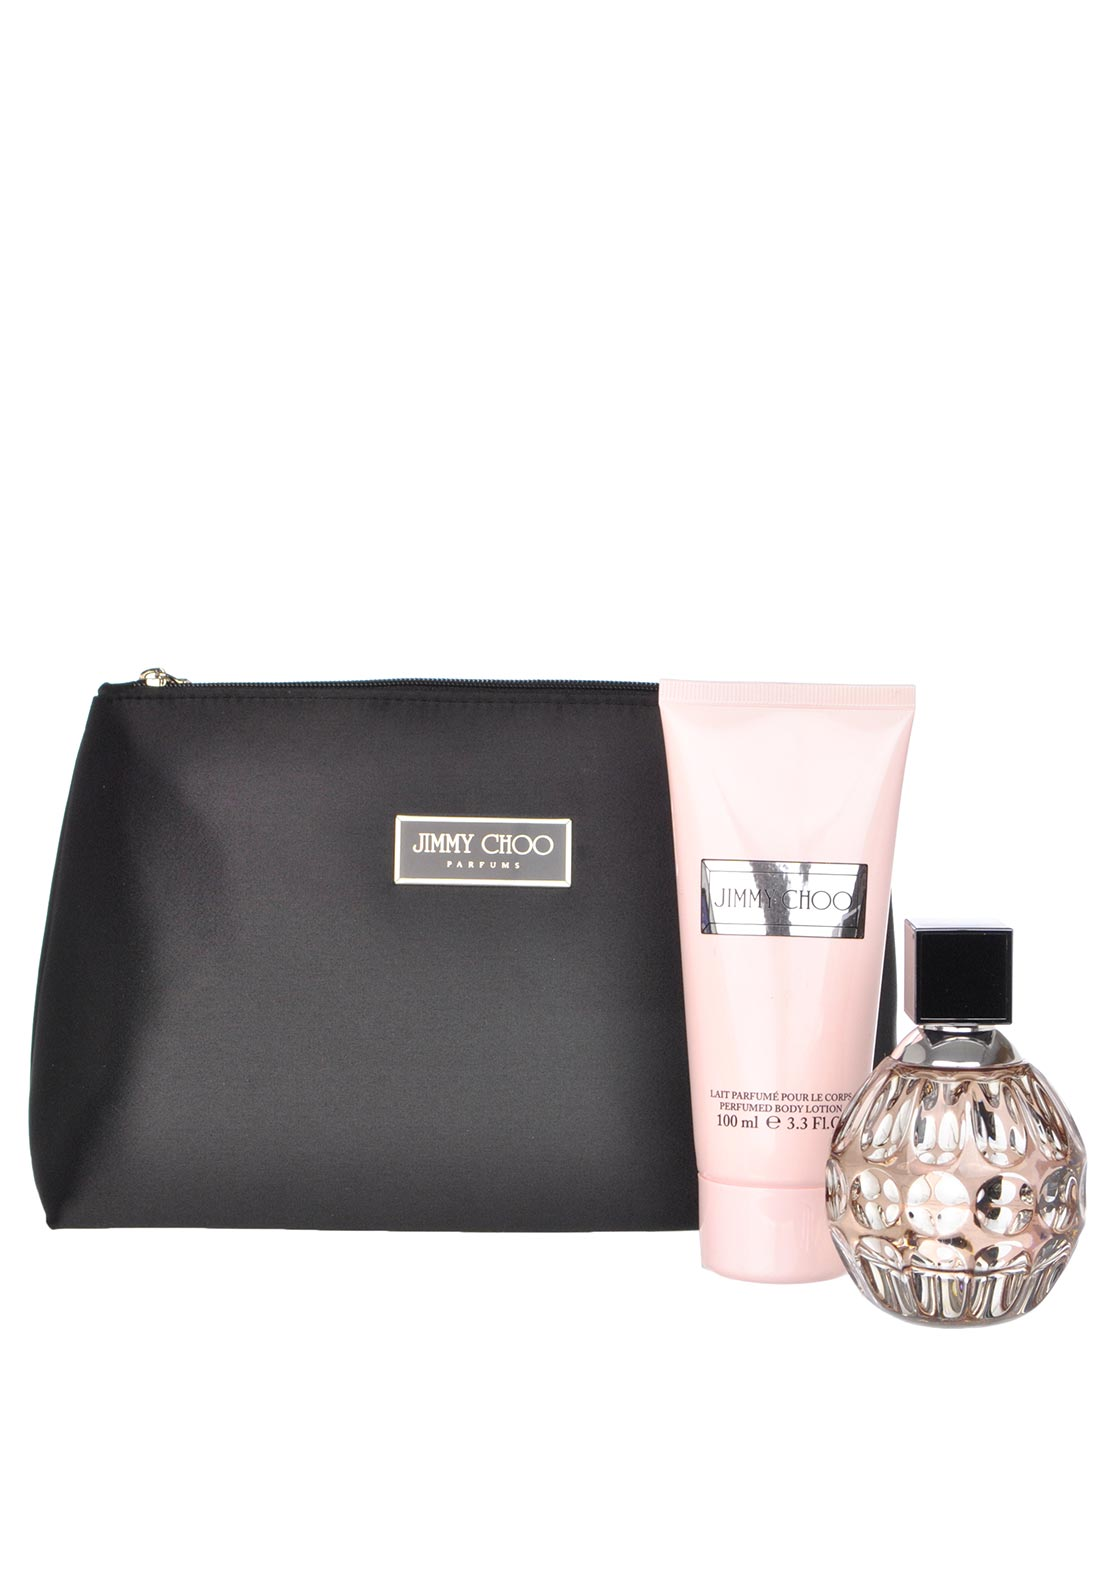 Jimmy Choo Eau De Parfum Gift Set for Women, 60ml